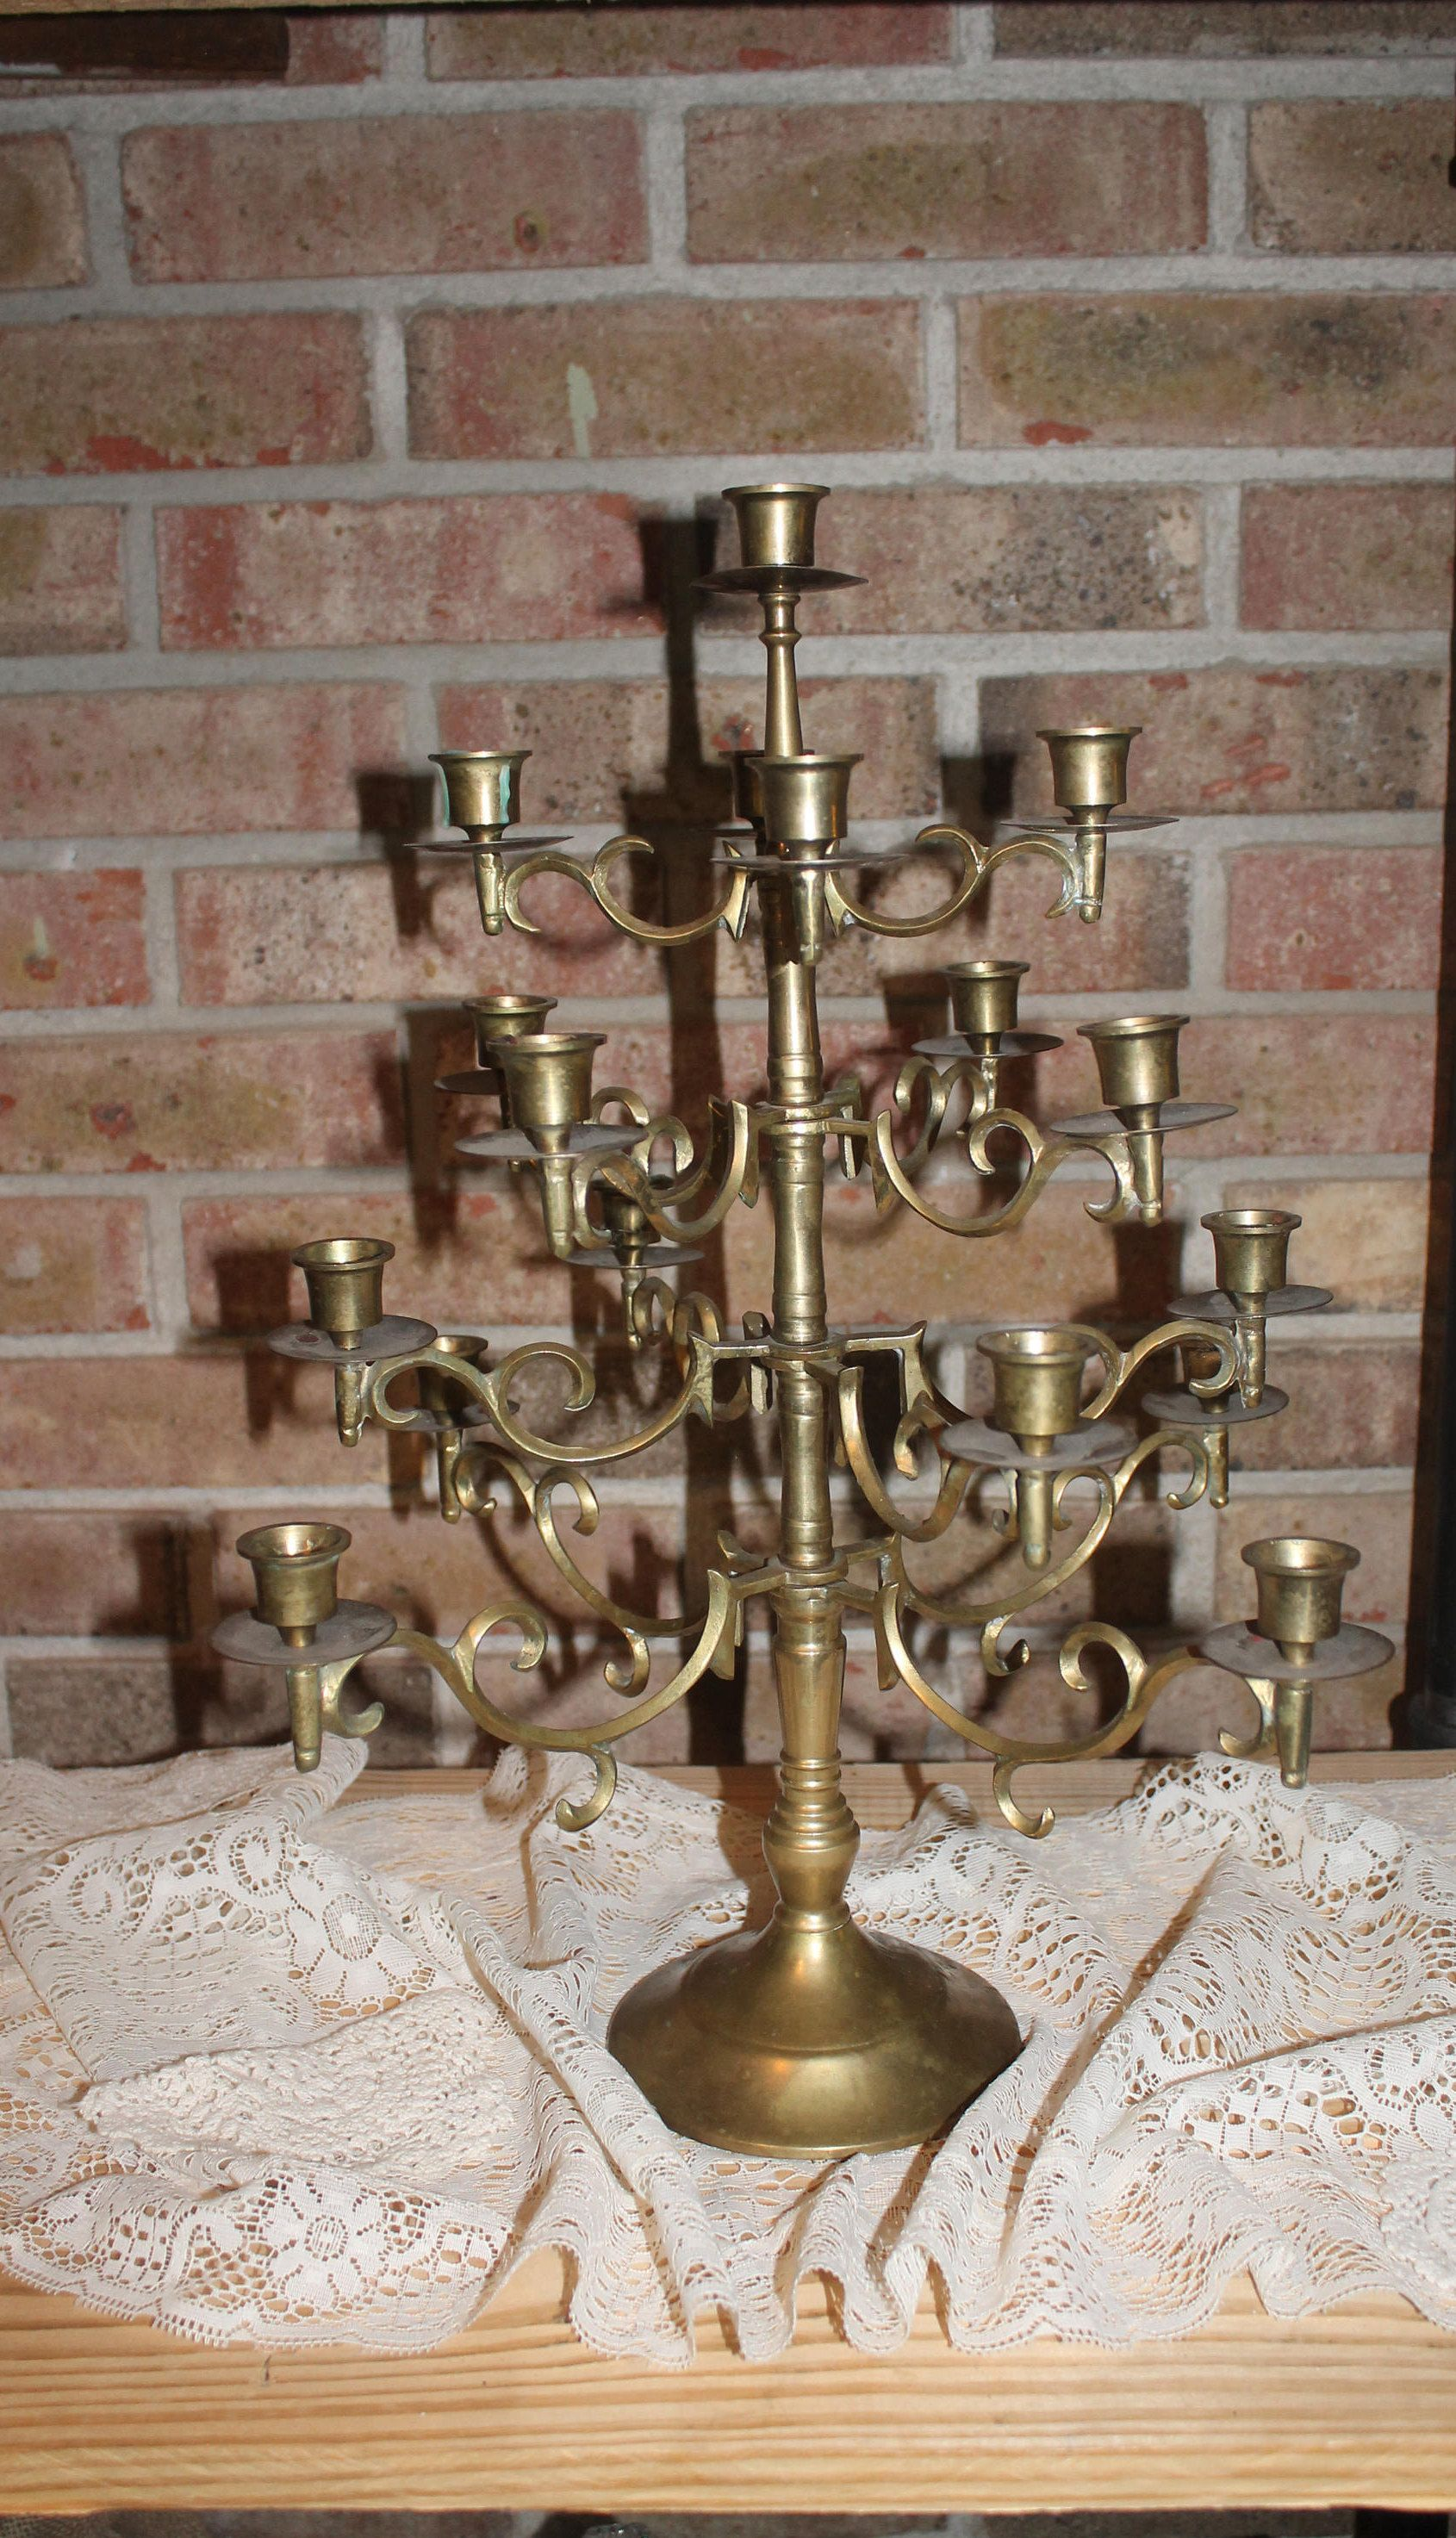 Large vintage brass candelabrasixteen arm candelabra17 candle large vintage brass candelabrasixteen arm candelabra17 candle brass candelabrabrass candle holder by littlemossylane on etsy aloadofball Choice Image